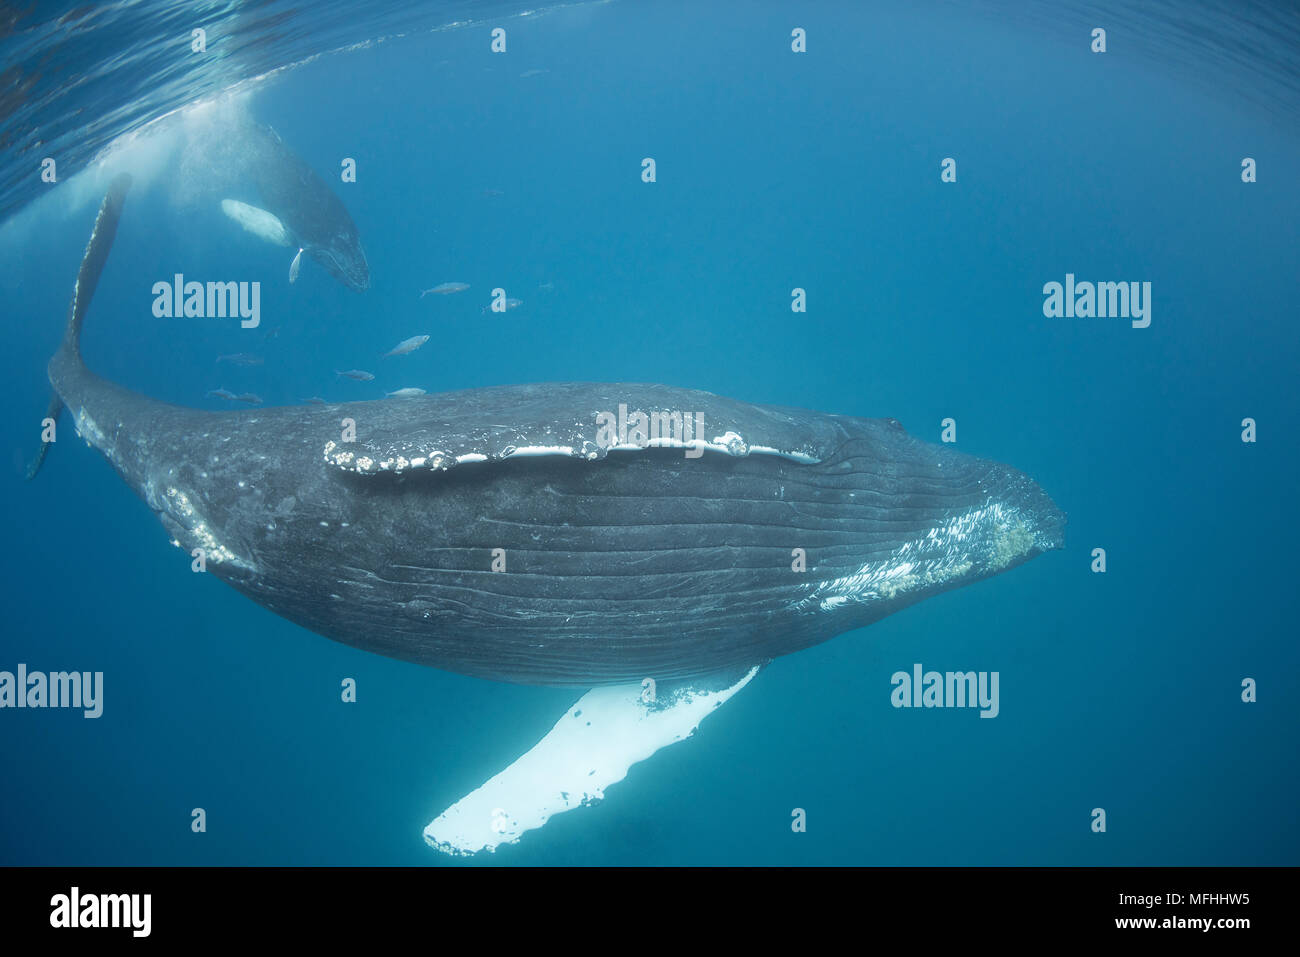 humpback whales, Megaptera novaeangliae, a calf follows its mother; both are accompanied by leatherbacks or doublespotted queenfish, Scomberoides lysa - Stock Image